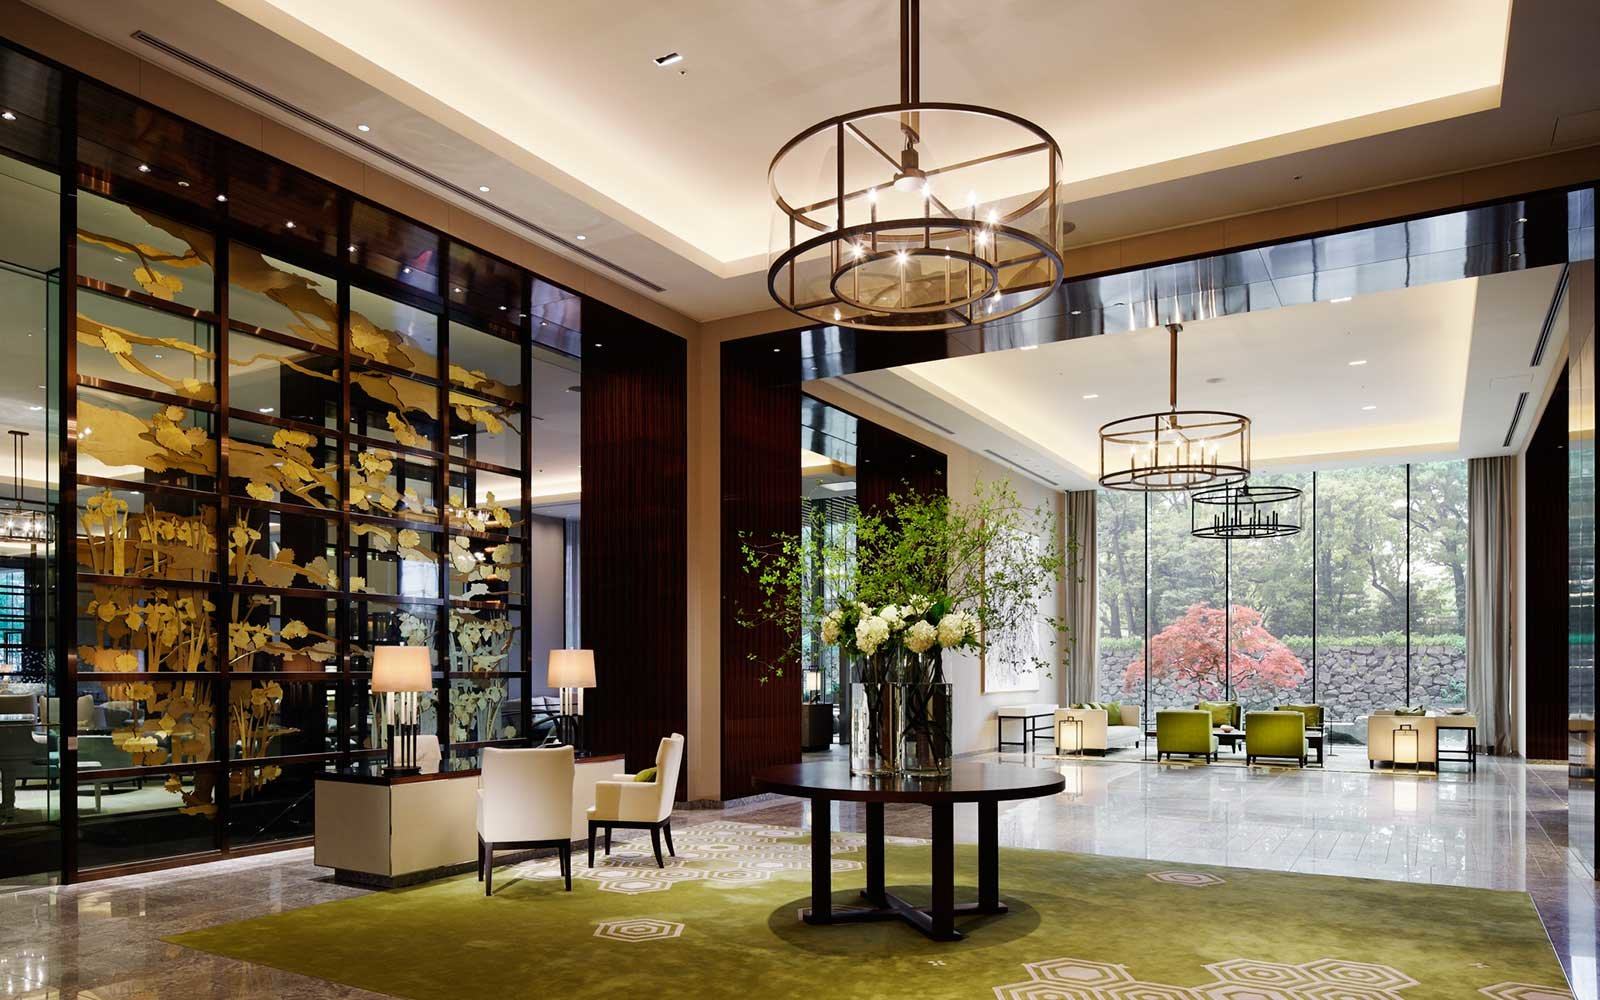 Palace Hotel in Tokyo